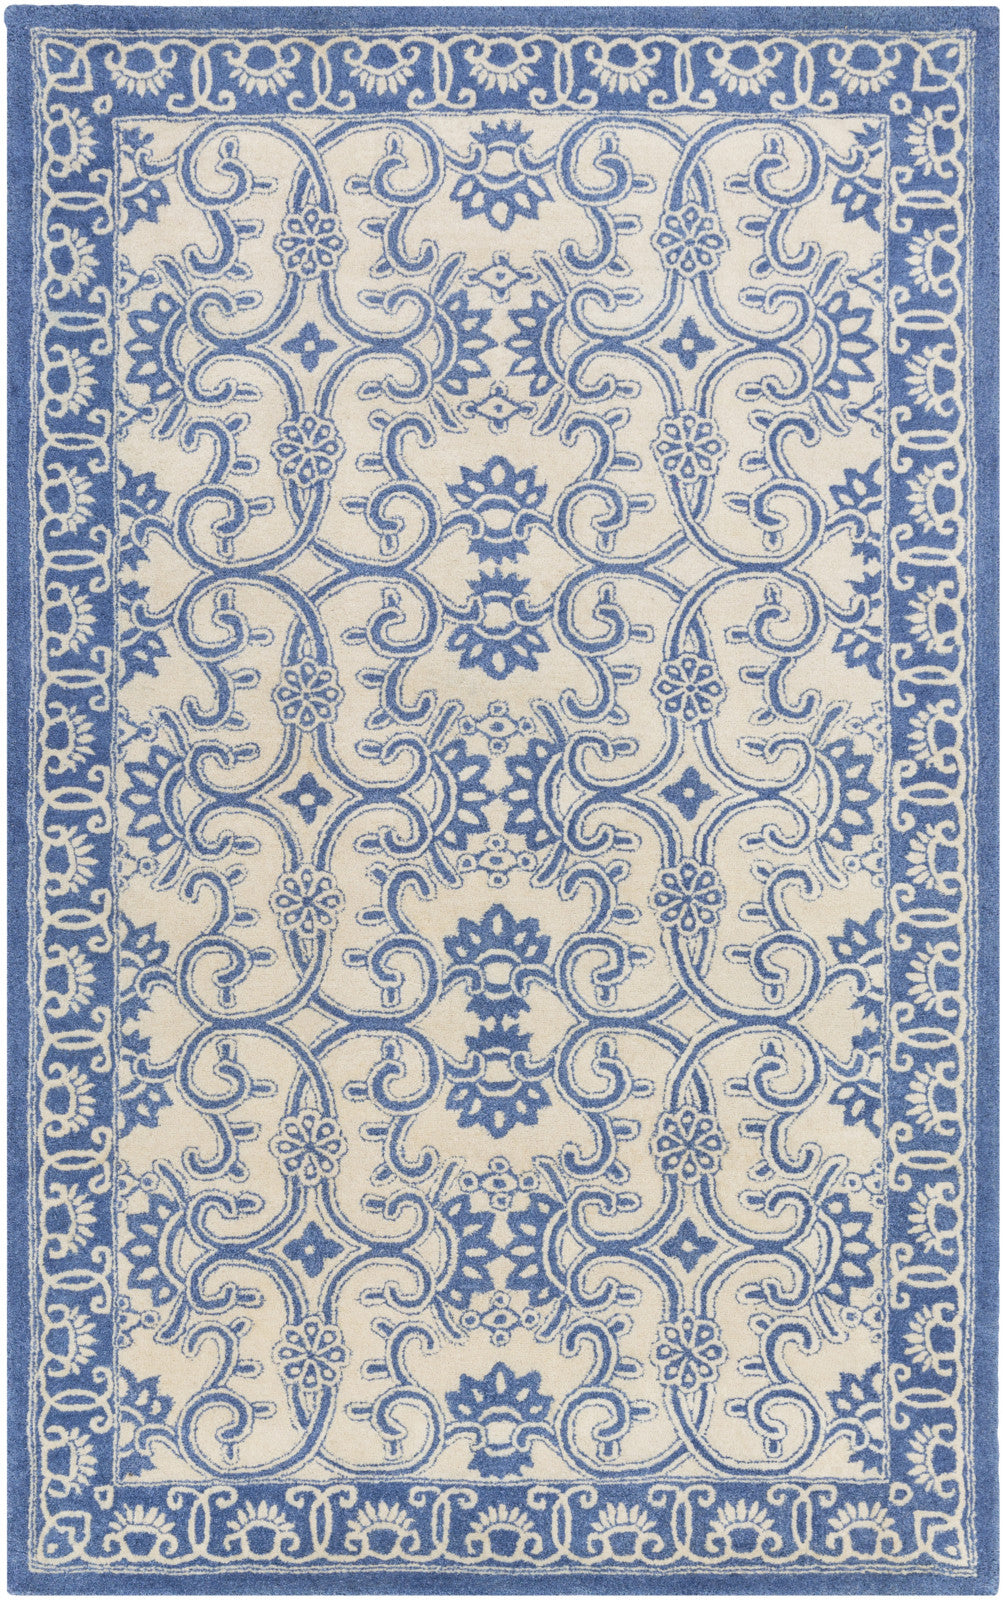 Surya SMI-2157 Blue Area Rug by Smithsonian